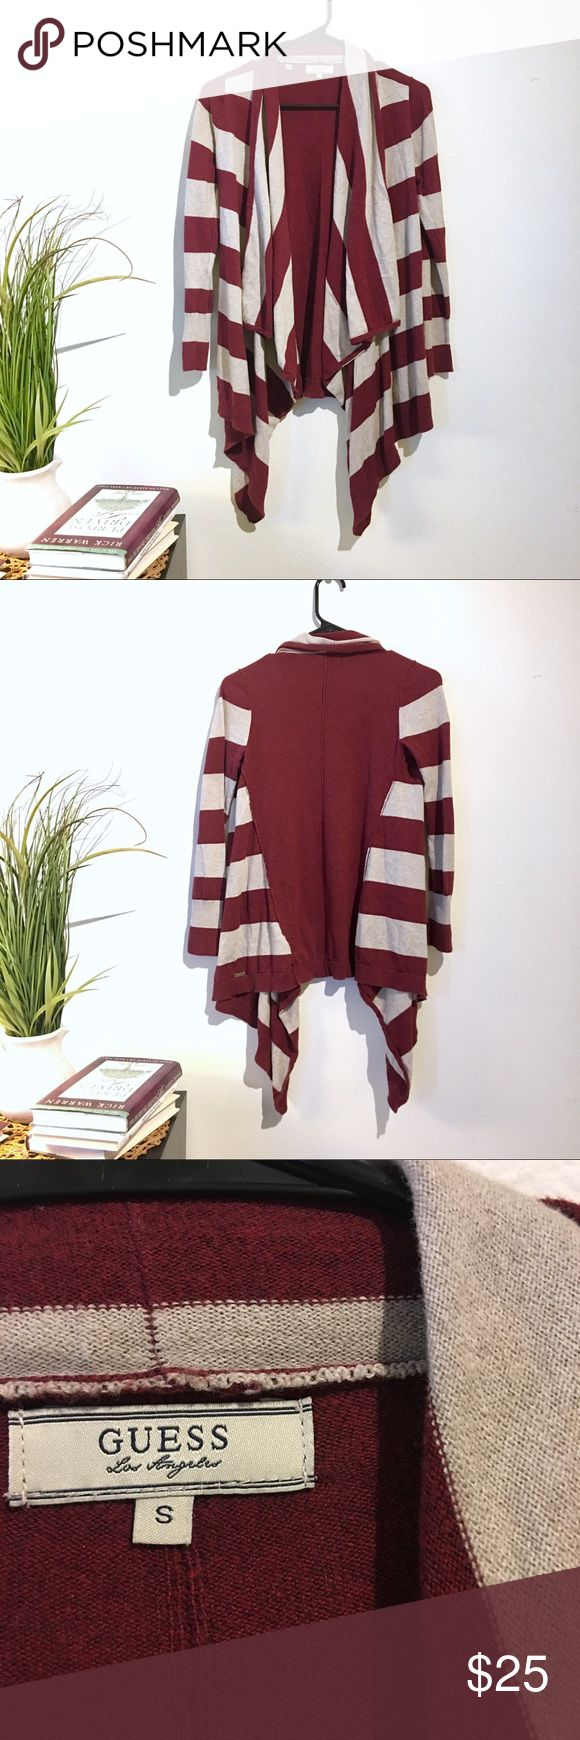 GUESS maroon and beige striped cardigan excellent condition! Perfect for fall...size small Guess Sweaters Cardigans